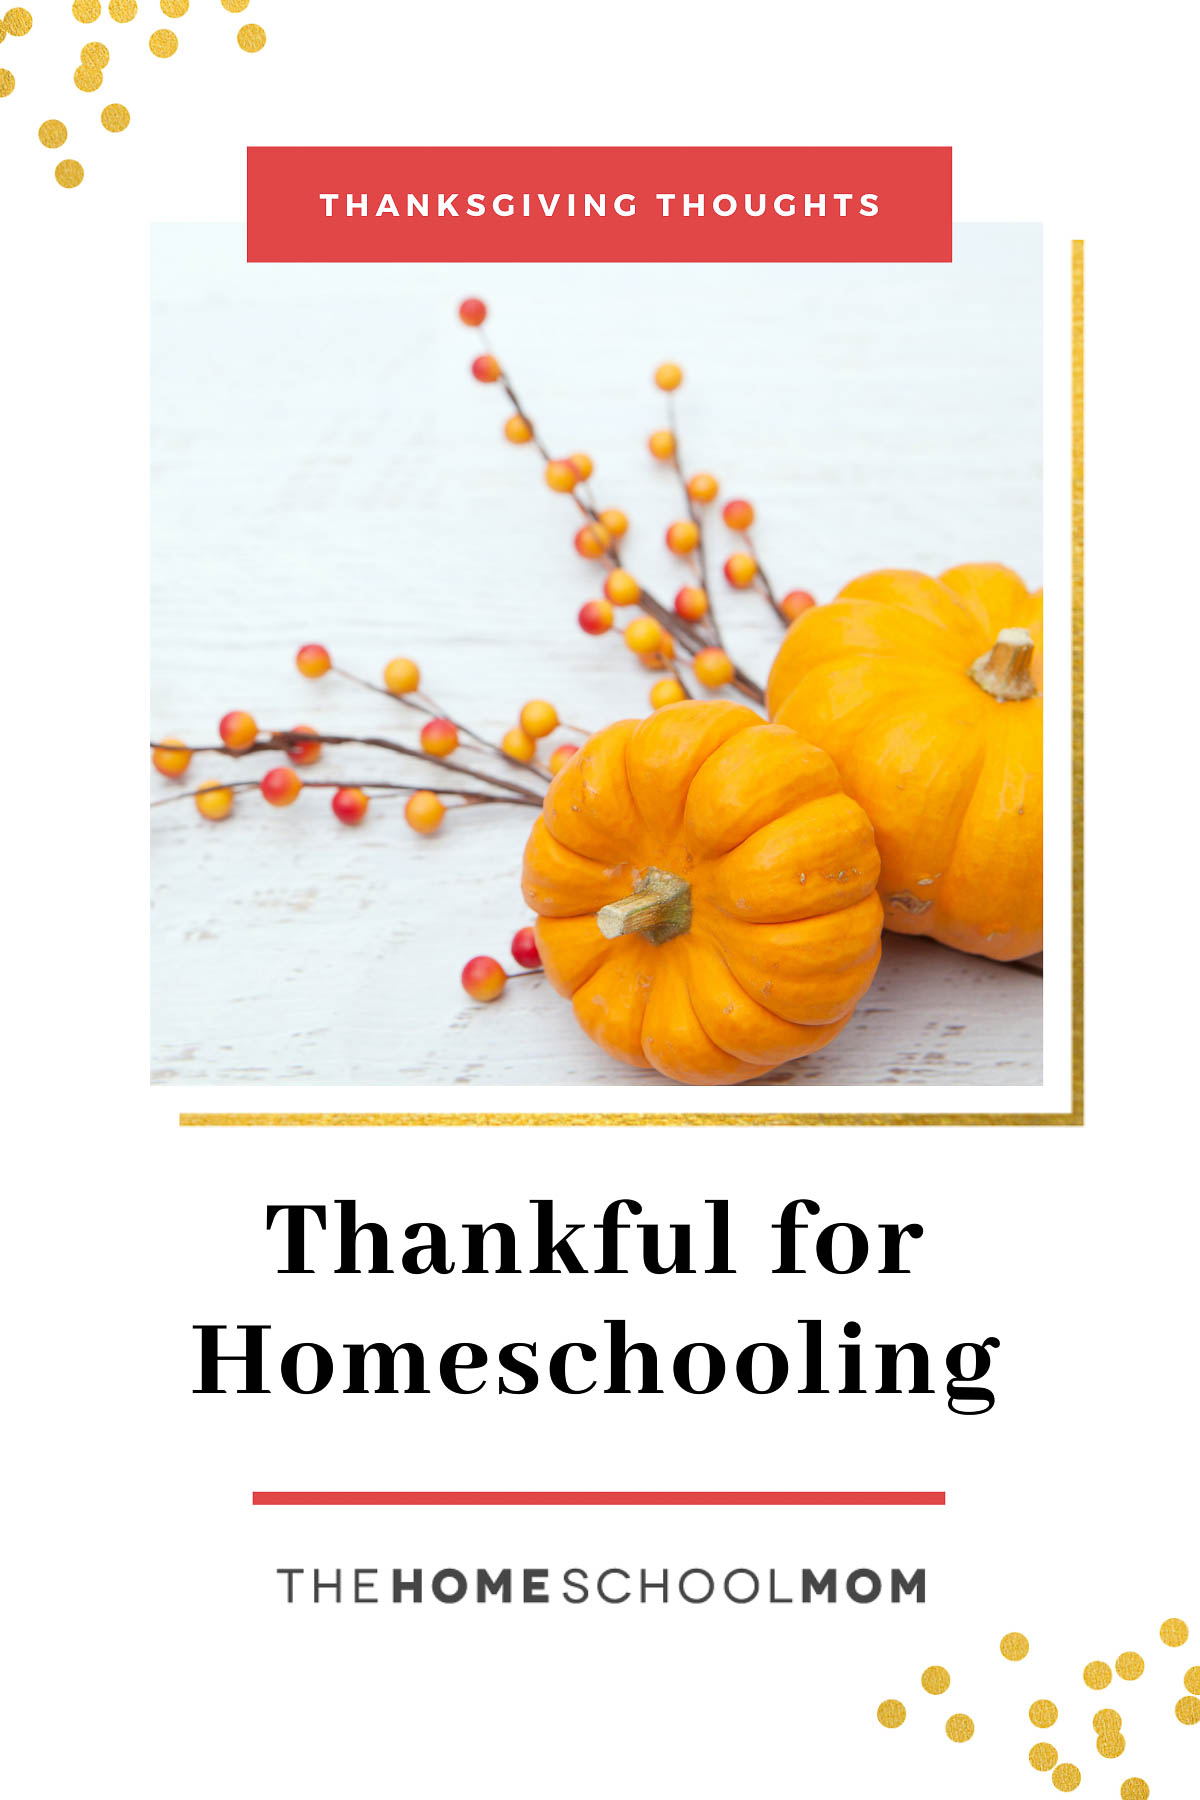 Homeschooling Thoughts: Thankful for Homeschooling - thehomeschoolmom